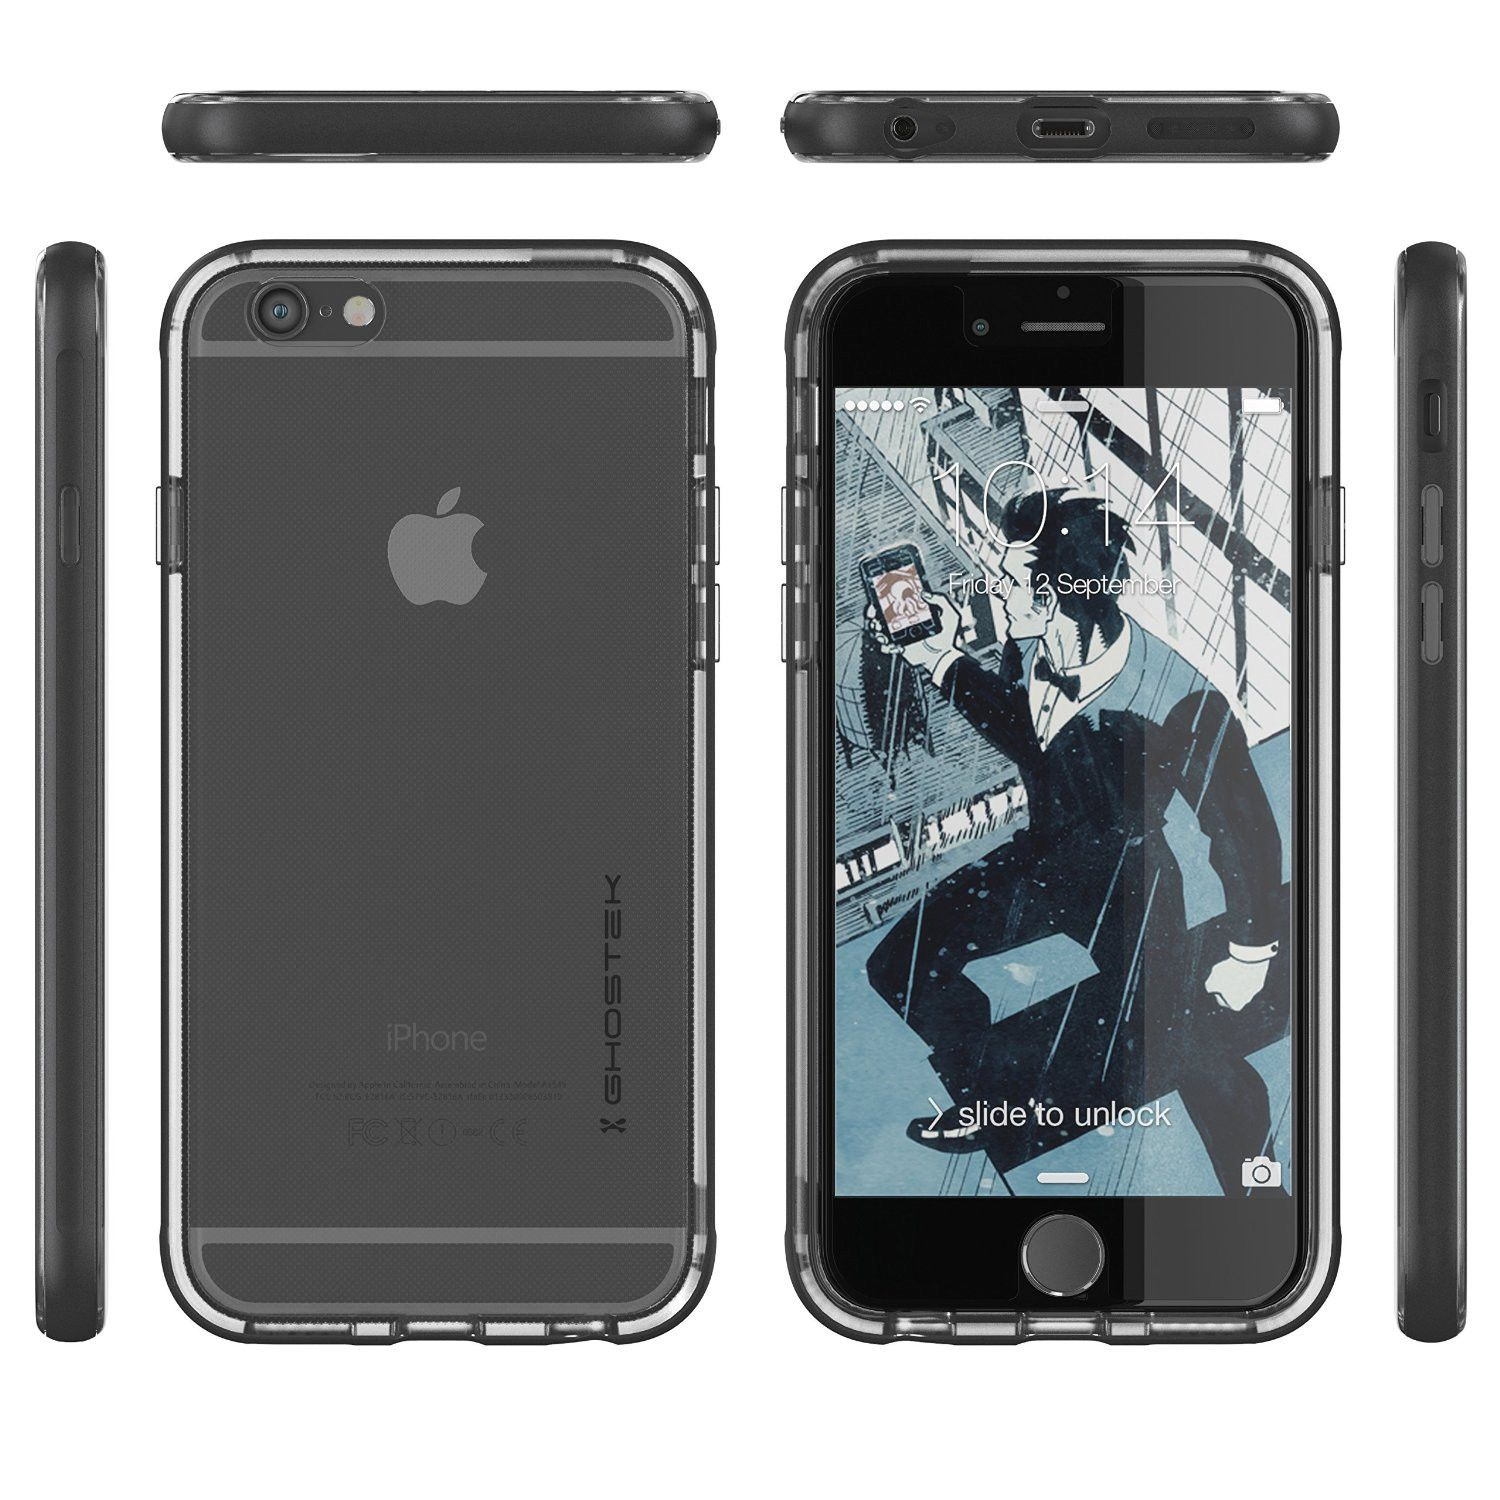 iphone 6 case space grey